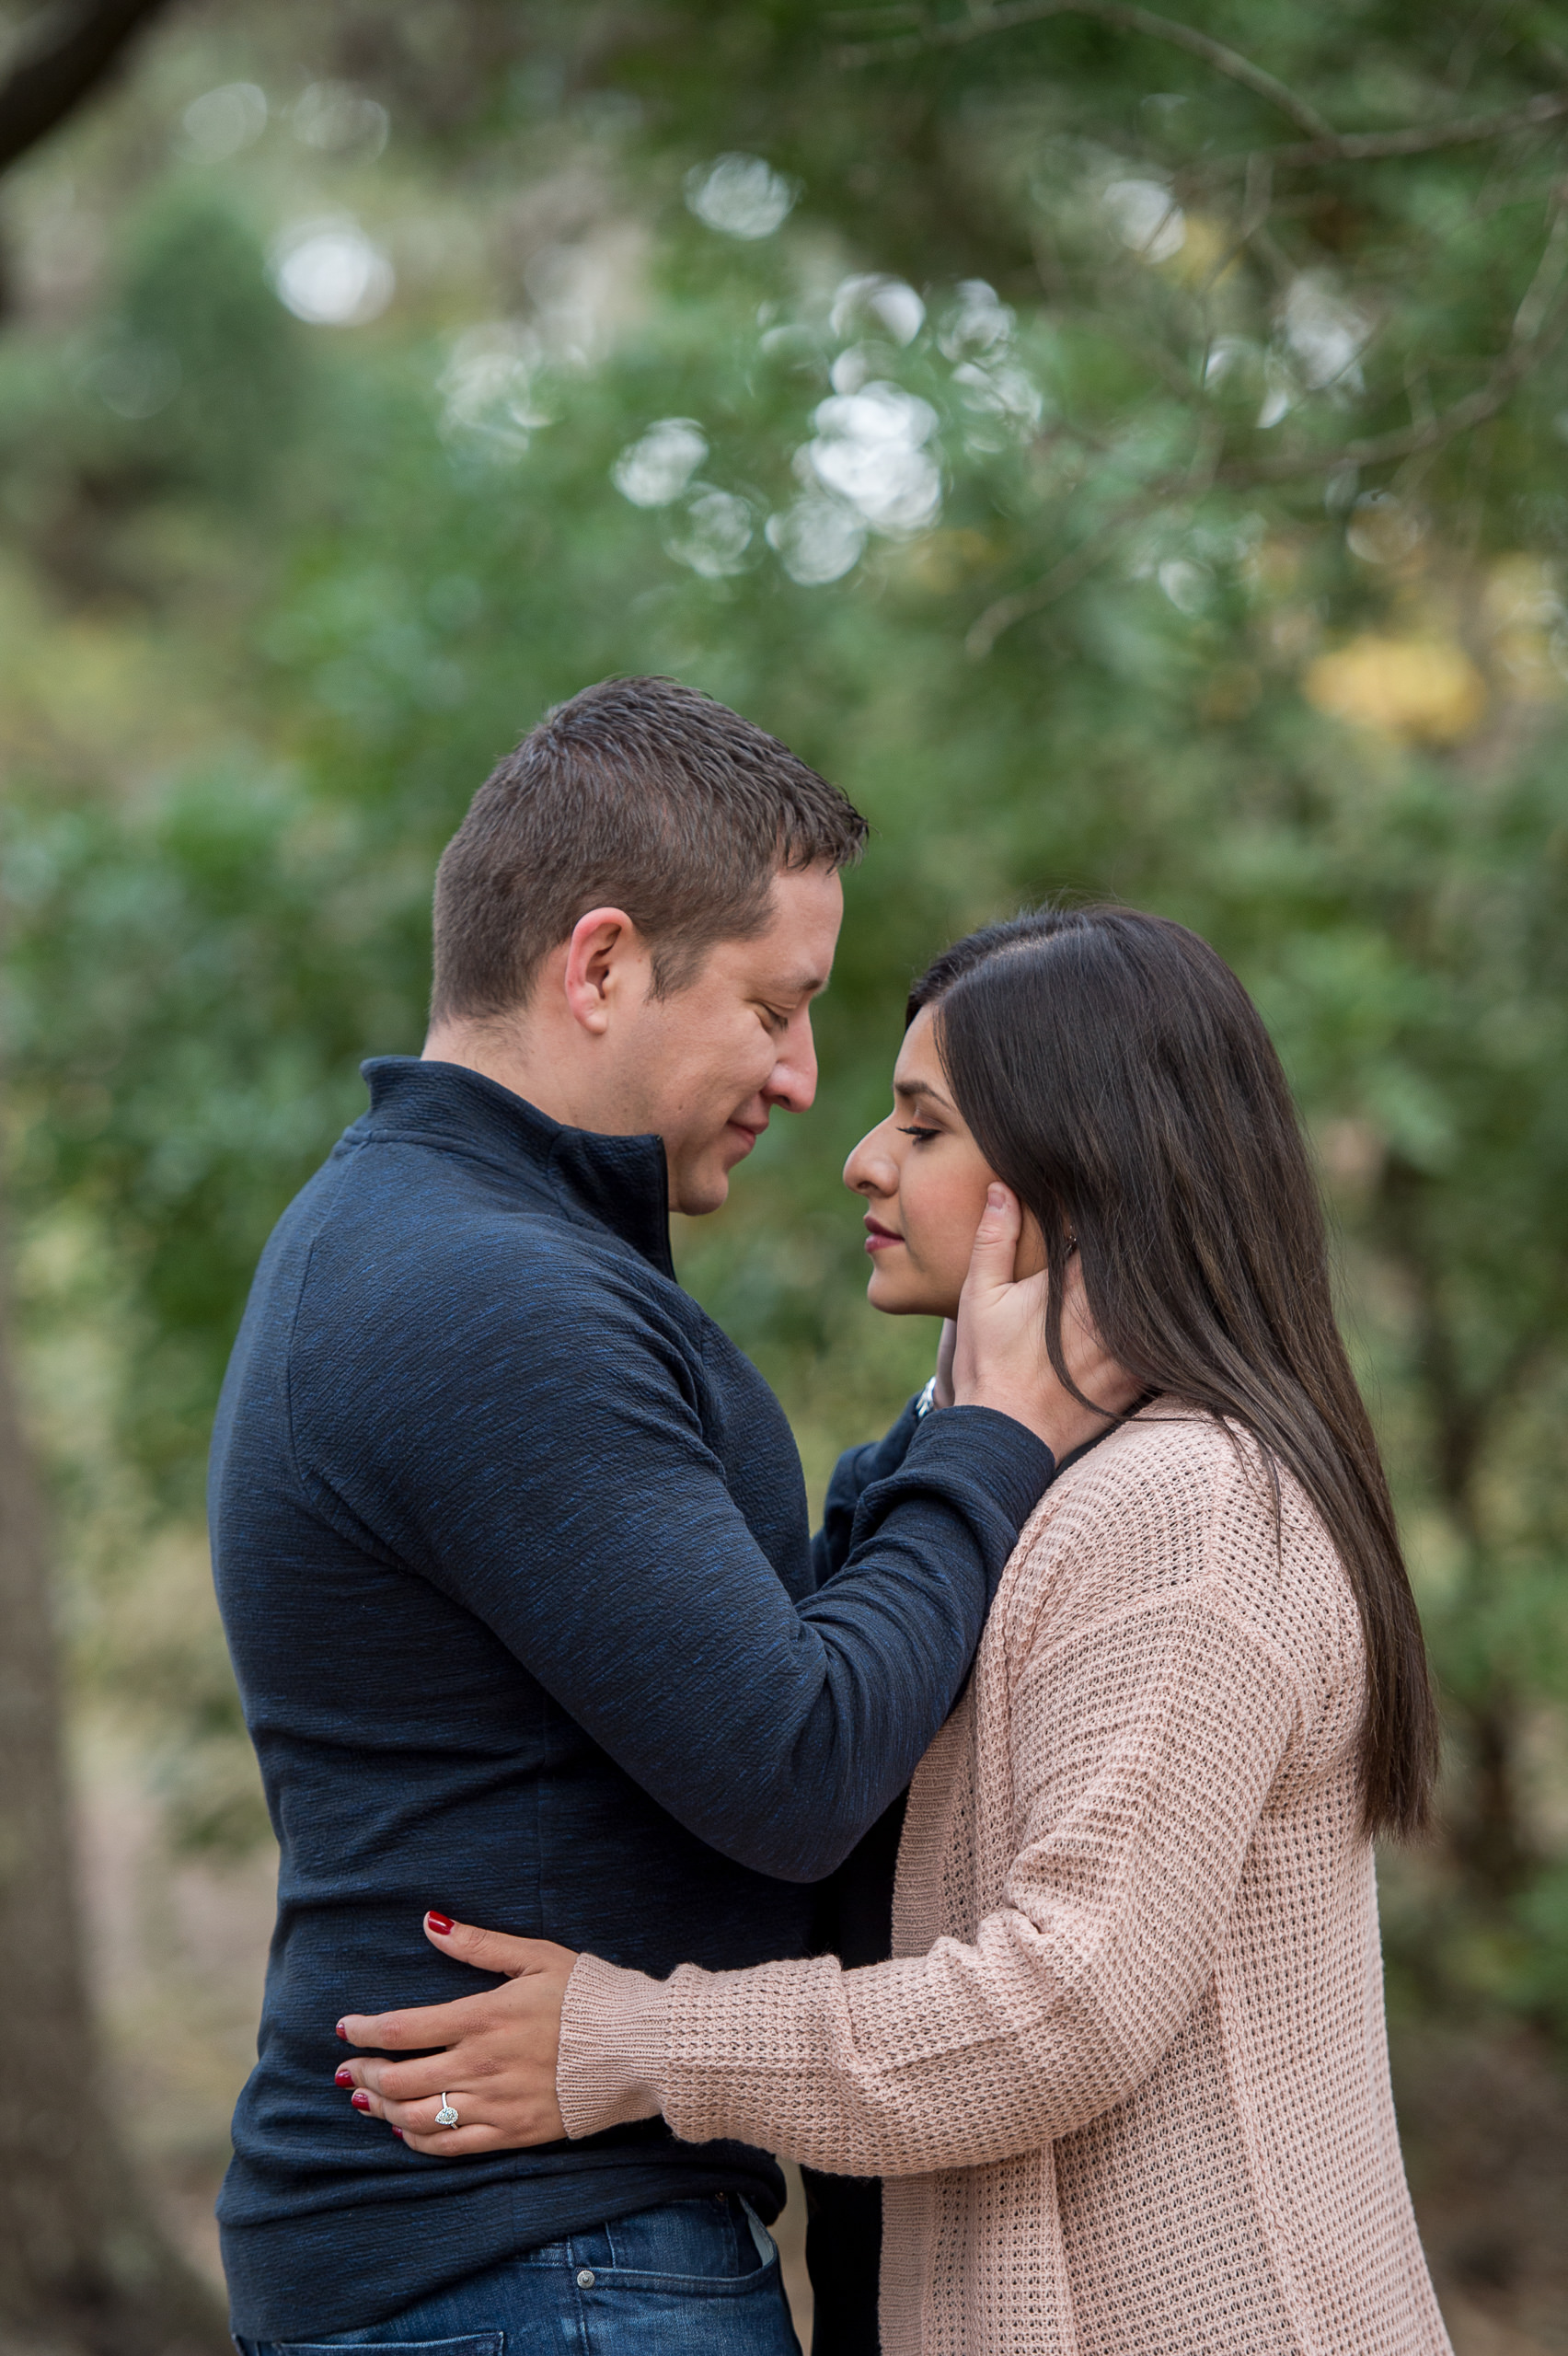 denman-estate-engagement-session-san-antonio-wedding-photographers-_4S24816-Edit